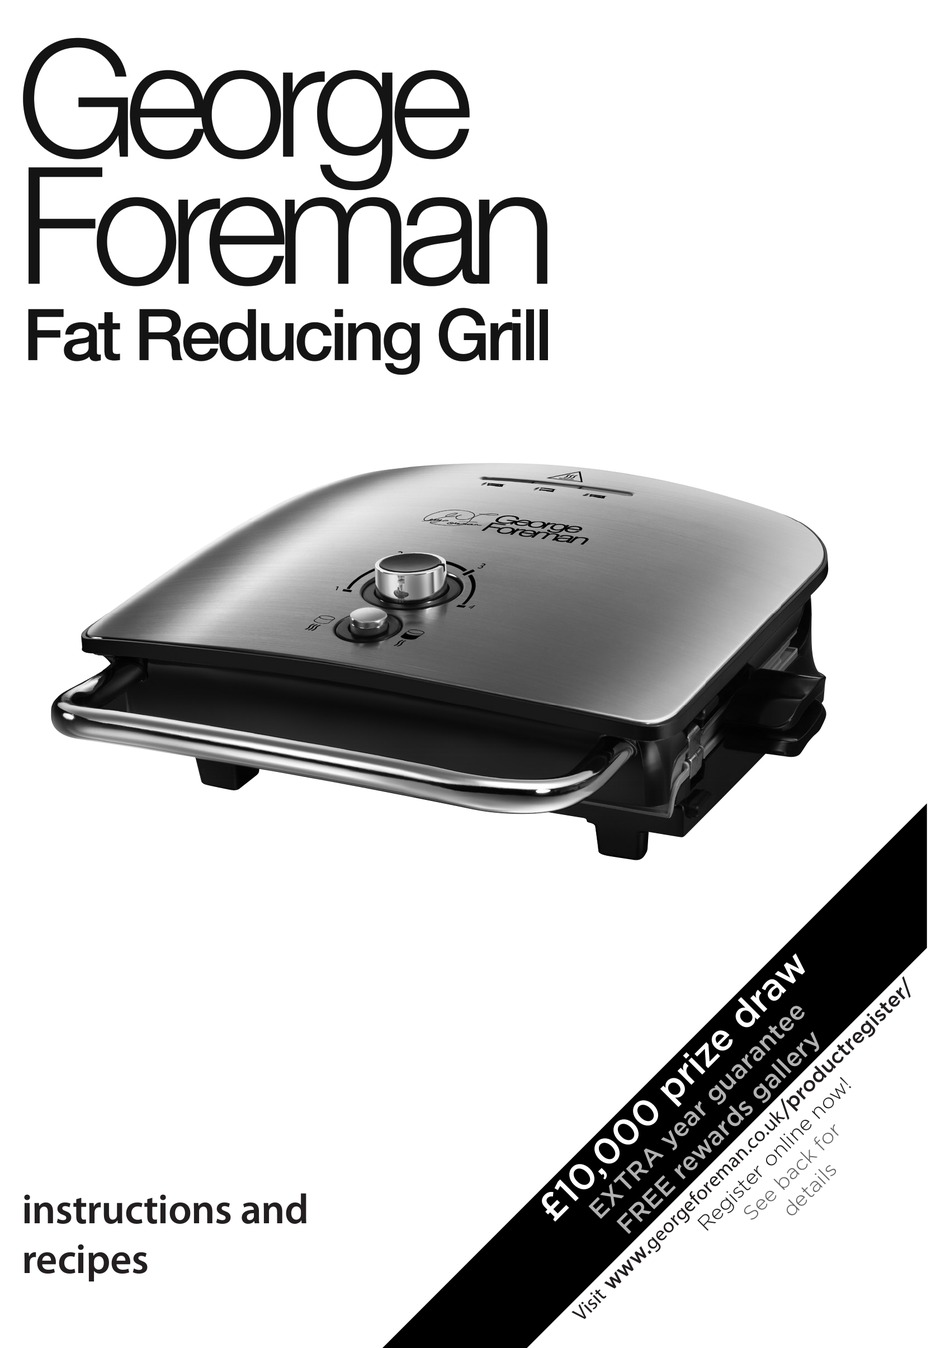 George Foreman 22160 Instructions And Recipes Manual Pdf Download Manualslib